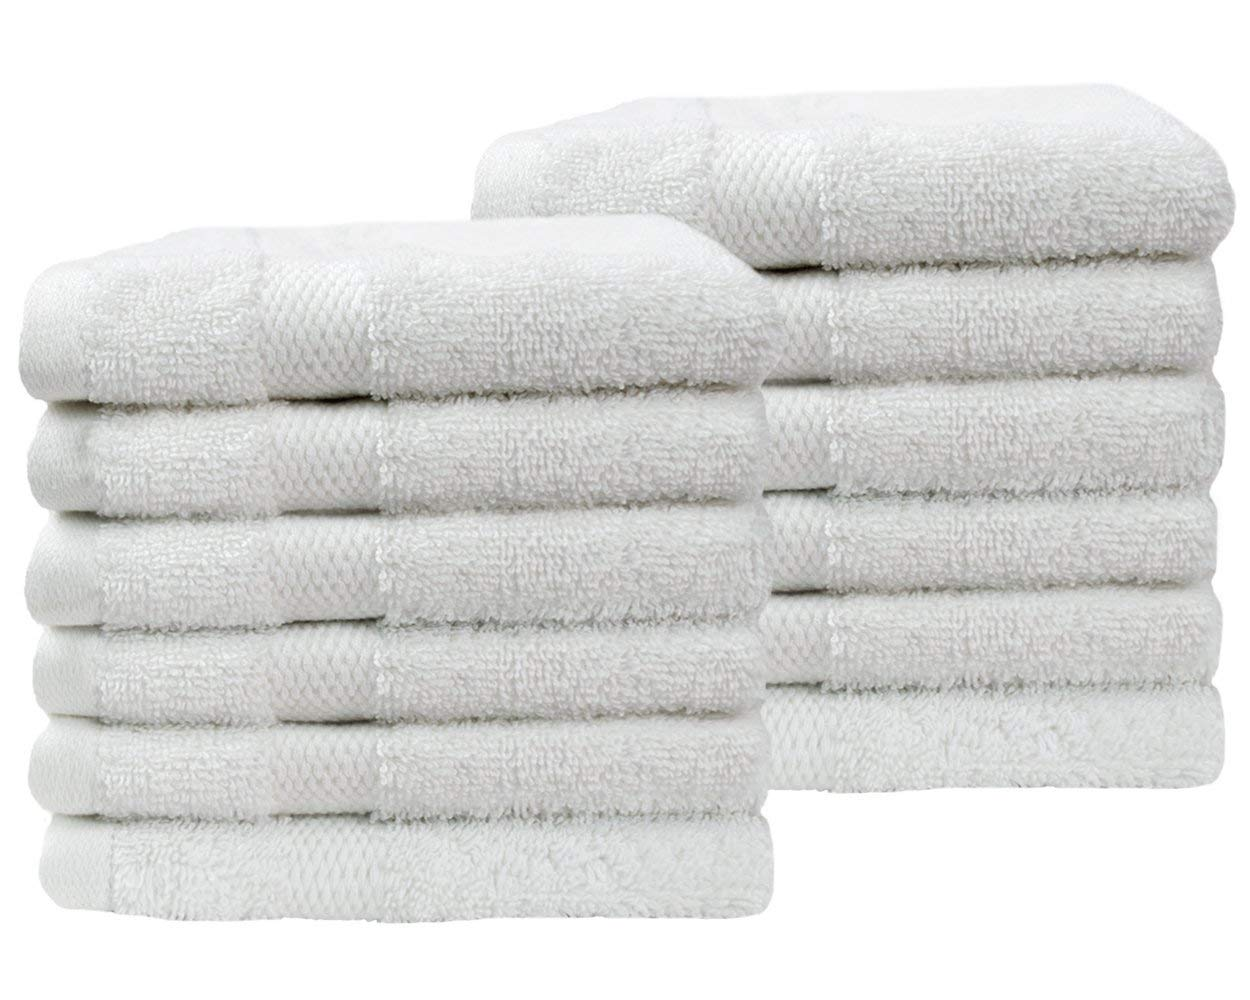 Cotton & Calm Exquisitely Fluffy Washcloths/Face Cloths Towel Set (12 Pack, 13'' x1 3''), Premium White Washcloths - Super Soft, Thick, and Absorbent for Face, Hand, Spa & Gym